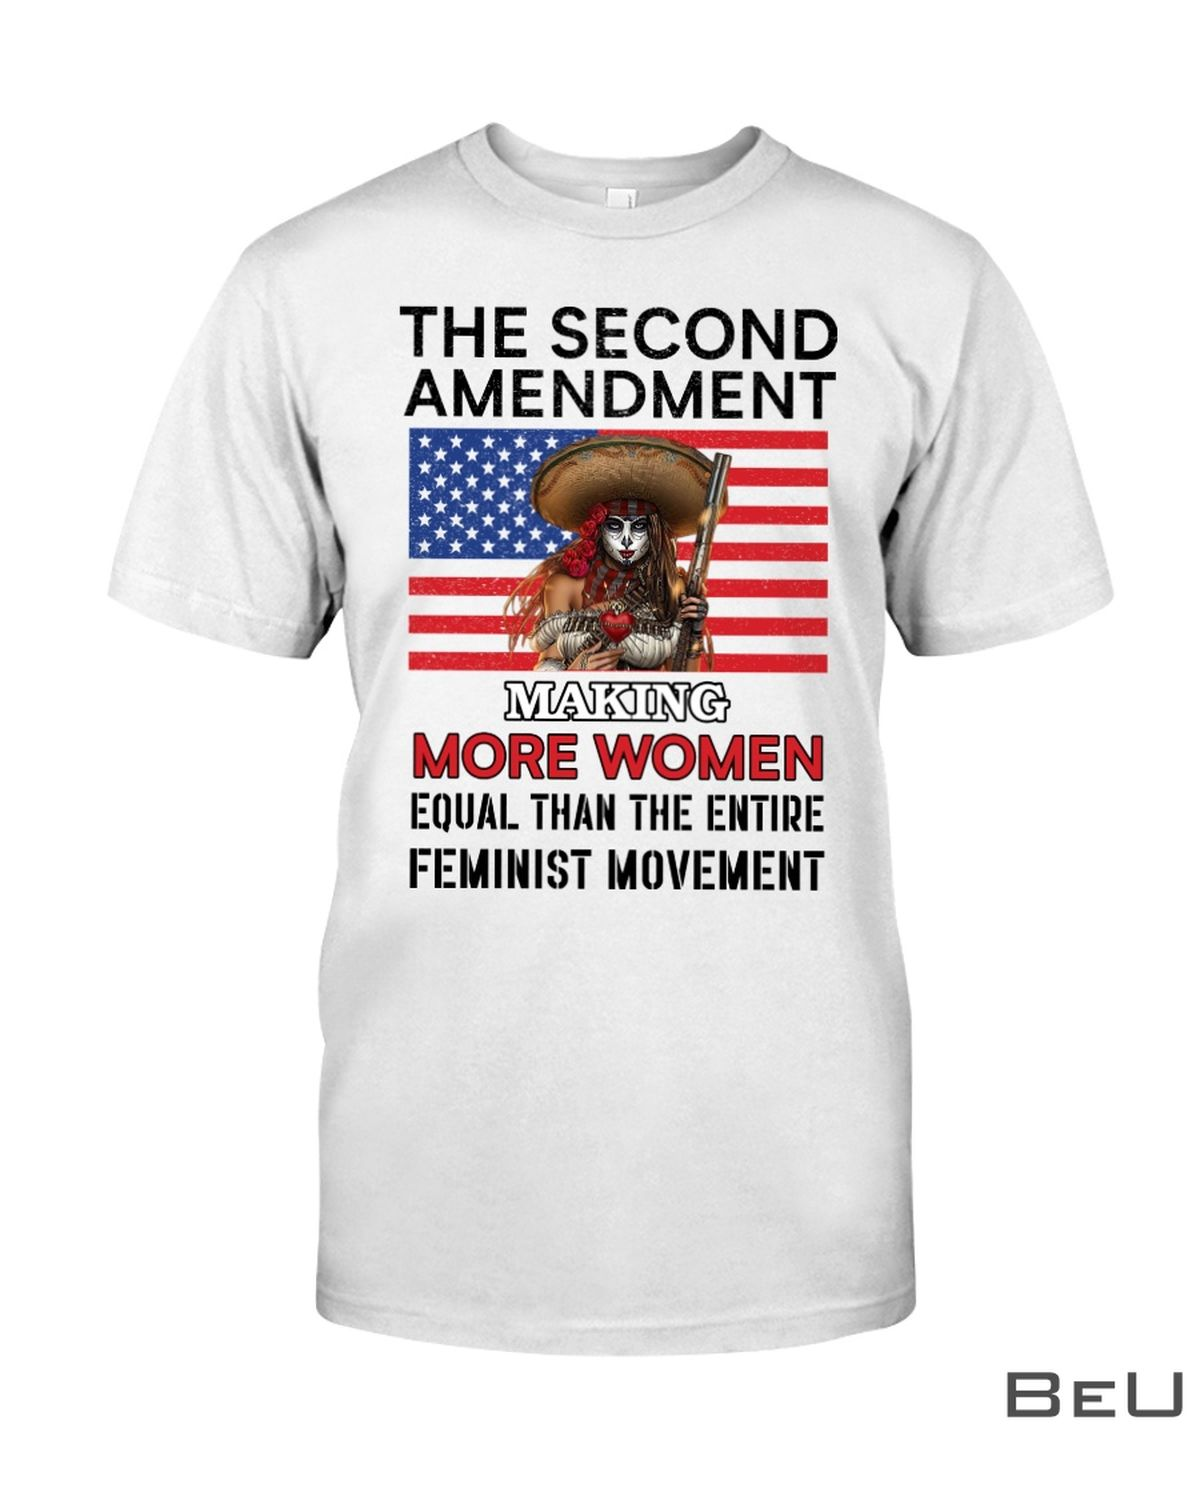 The Second Amendment Making More Women Equal Than The Entire Feminist Movement Shirt